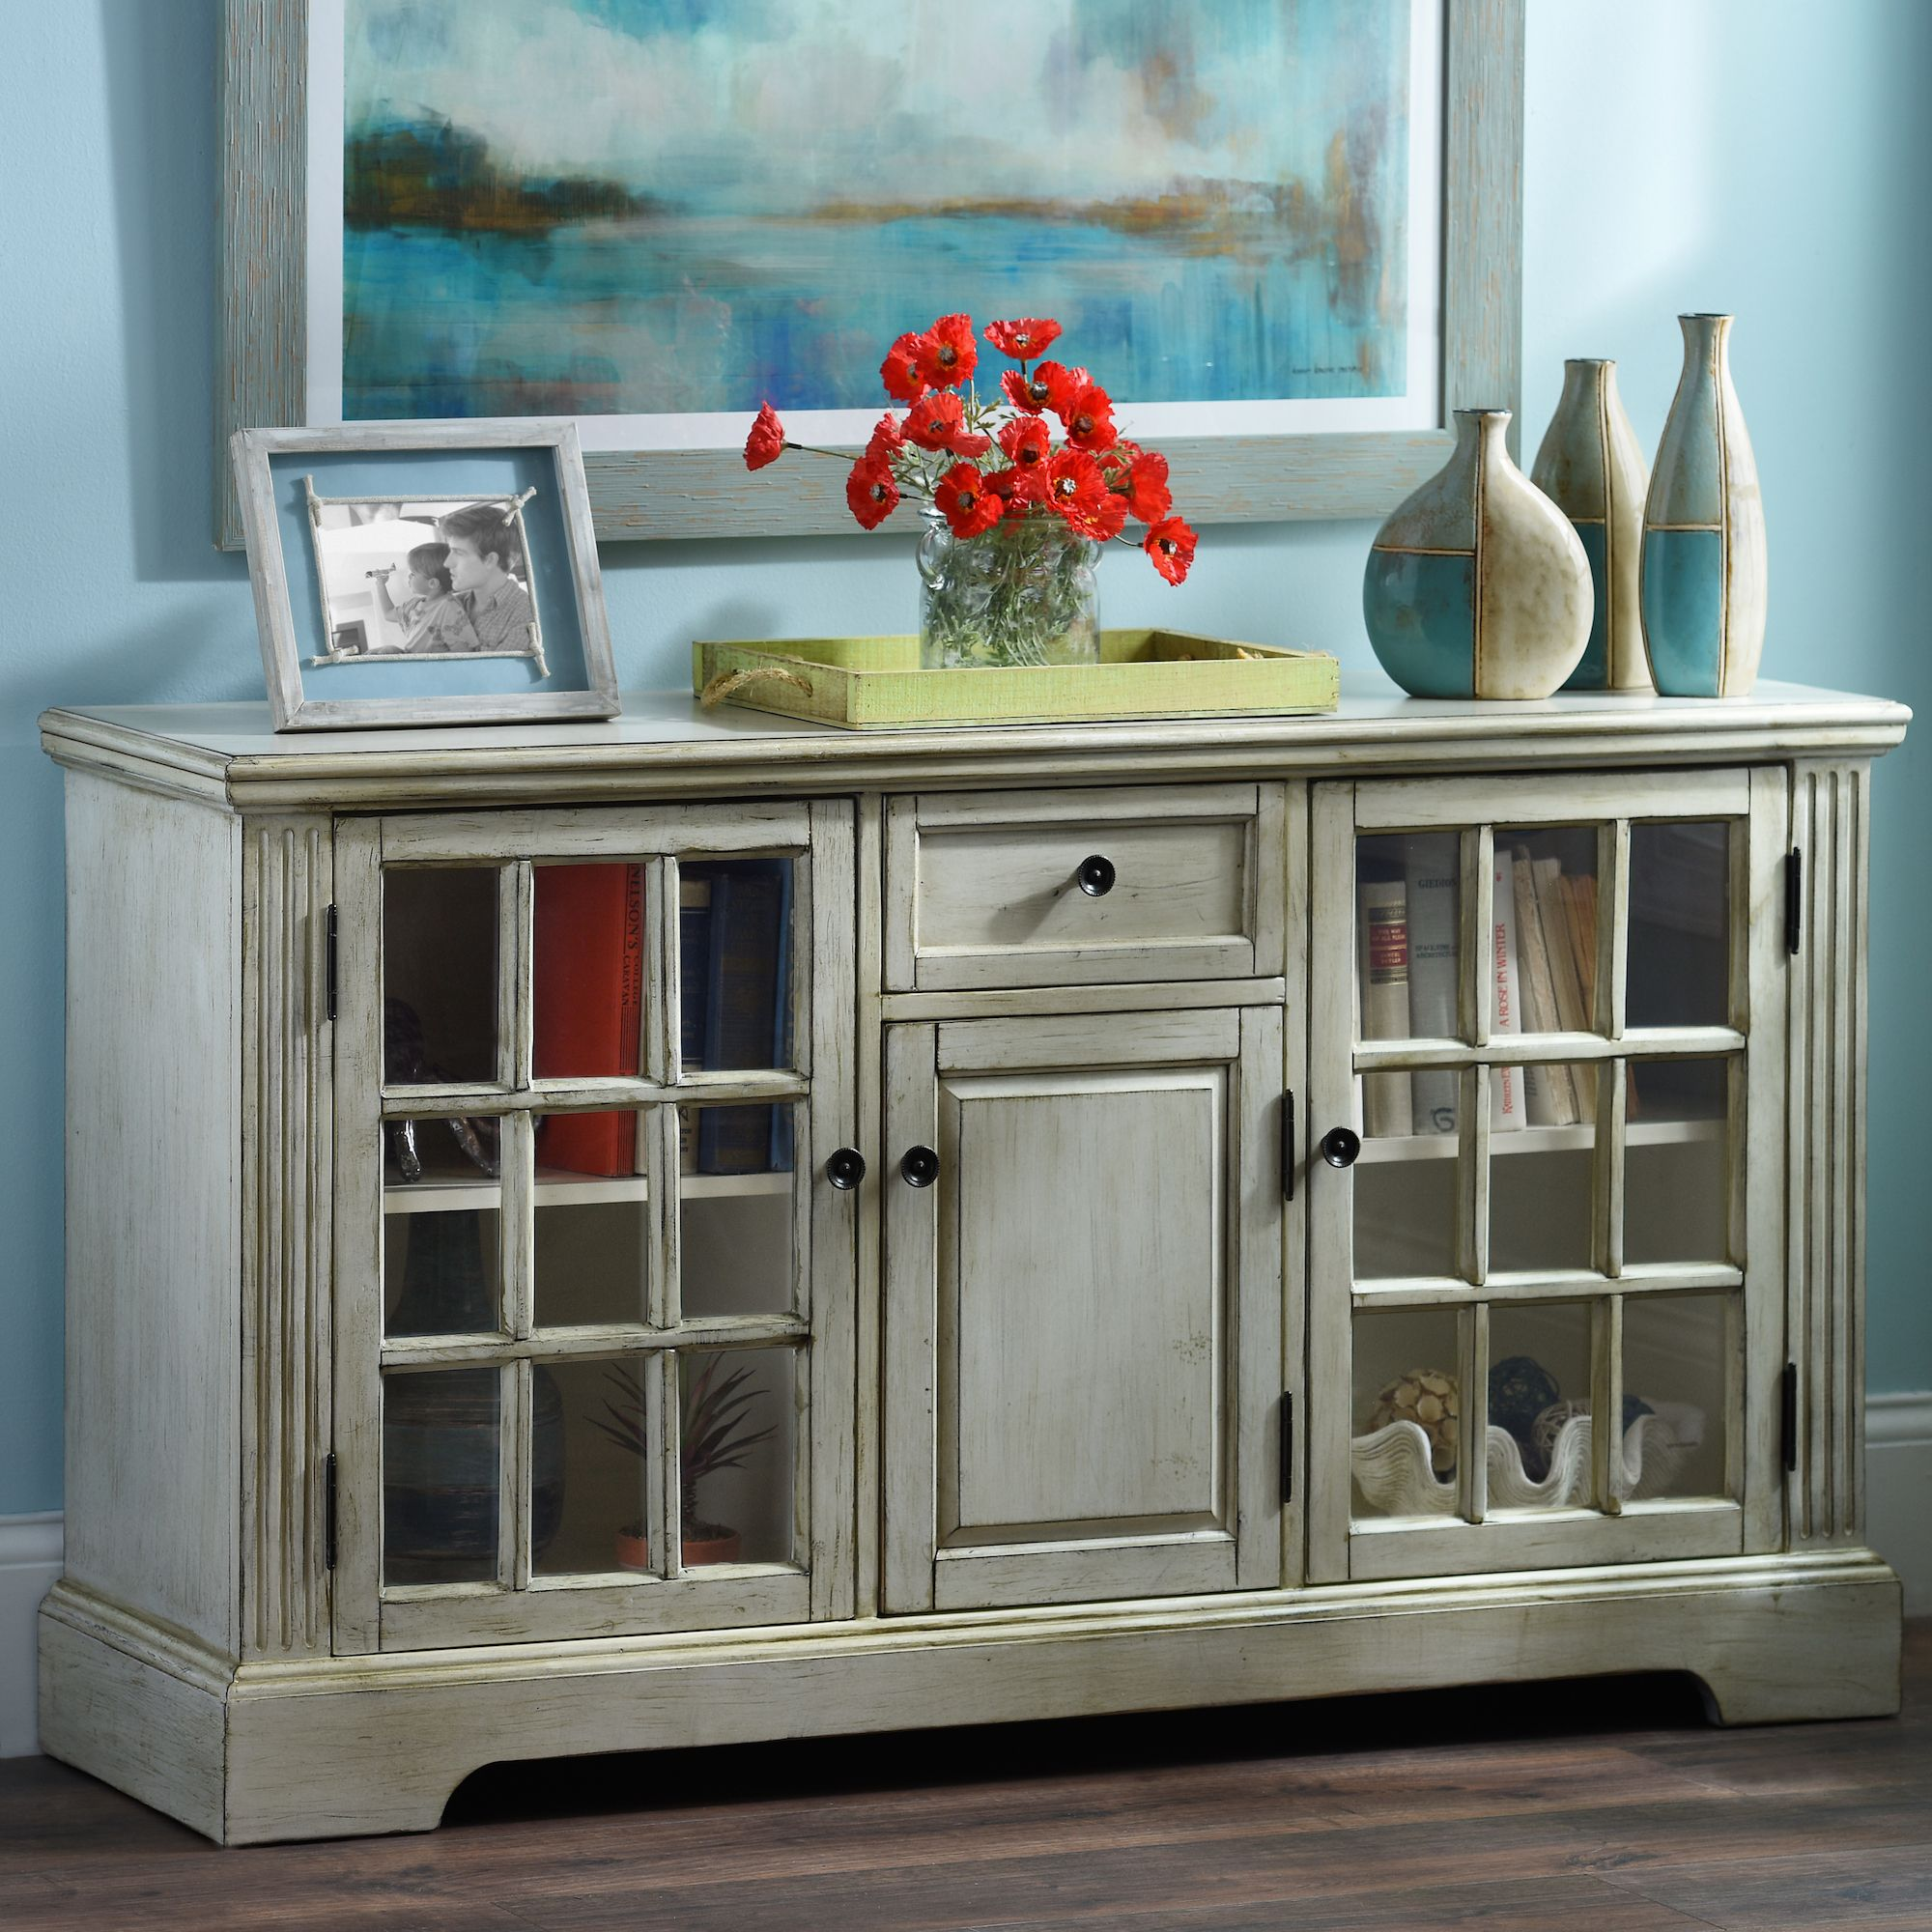 Beau Keep Your Media Space Both Organized And Stylish With The U0027Cream 3 Door Windowpane  Media Cabinetu0027 From Kirklandu0027s. Save 20% During Our Semi Annual Sale Now ...